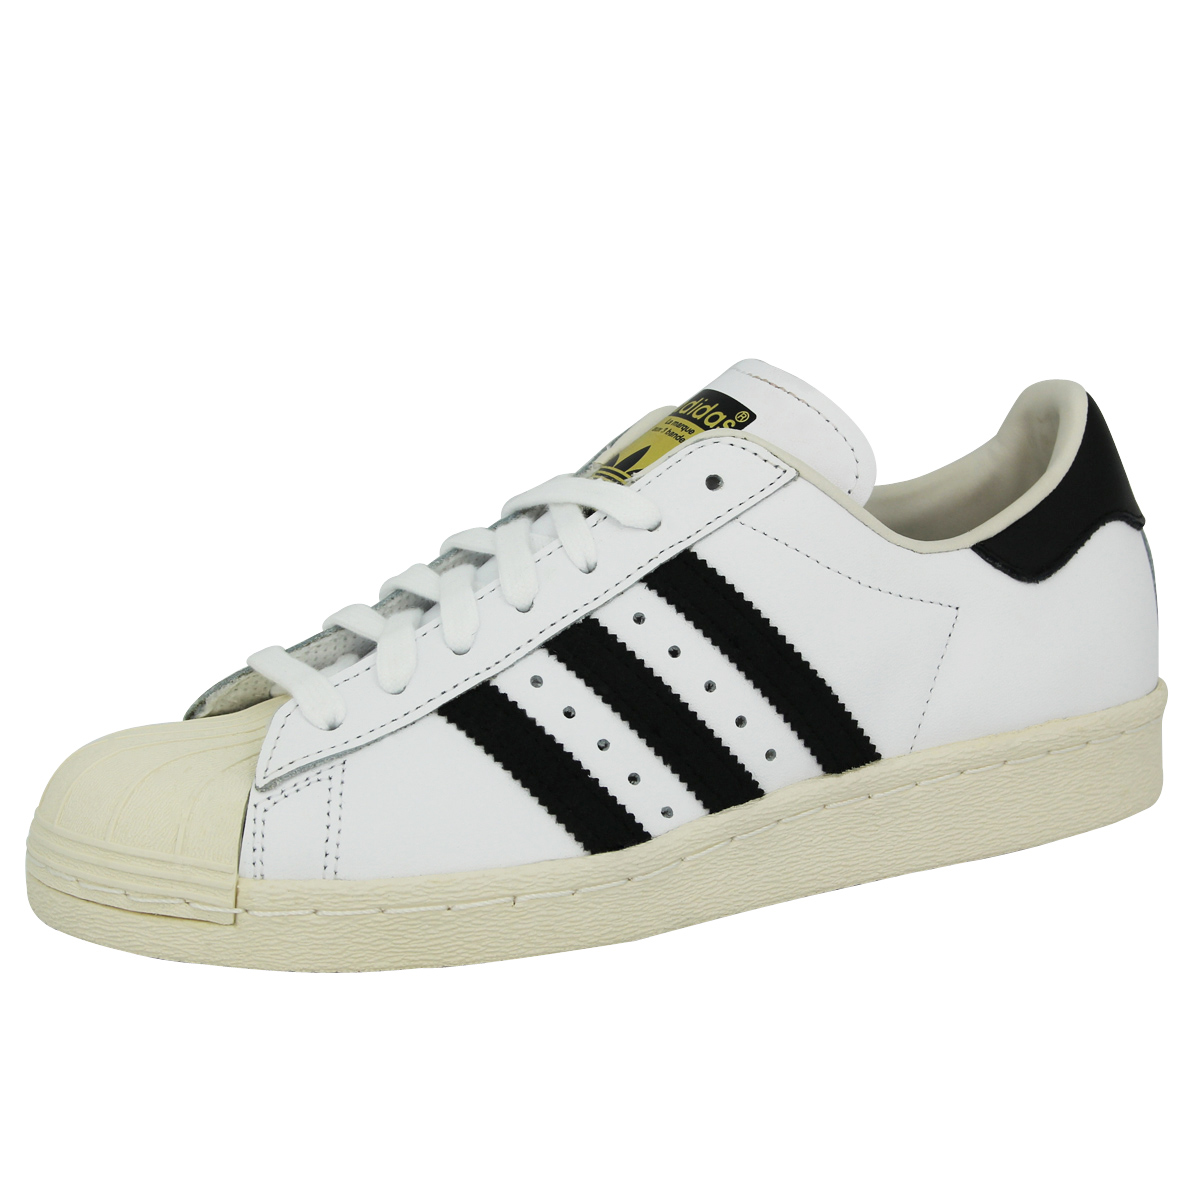 Adidas Originals SUPERSTAR 80S White Unisex Sneakers shoes